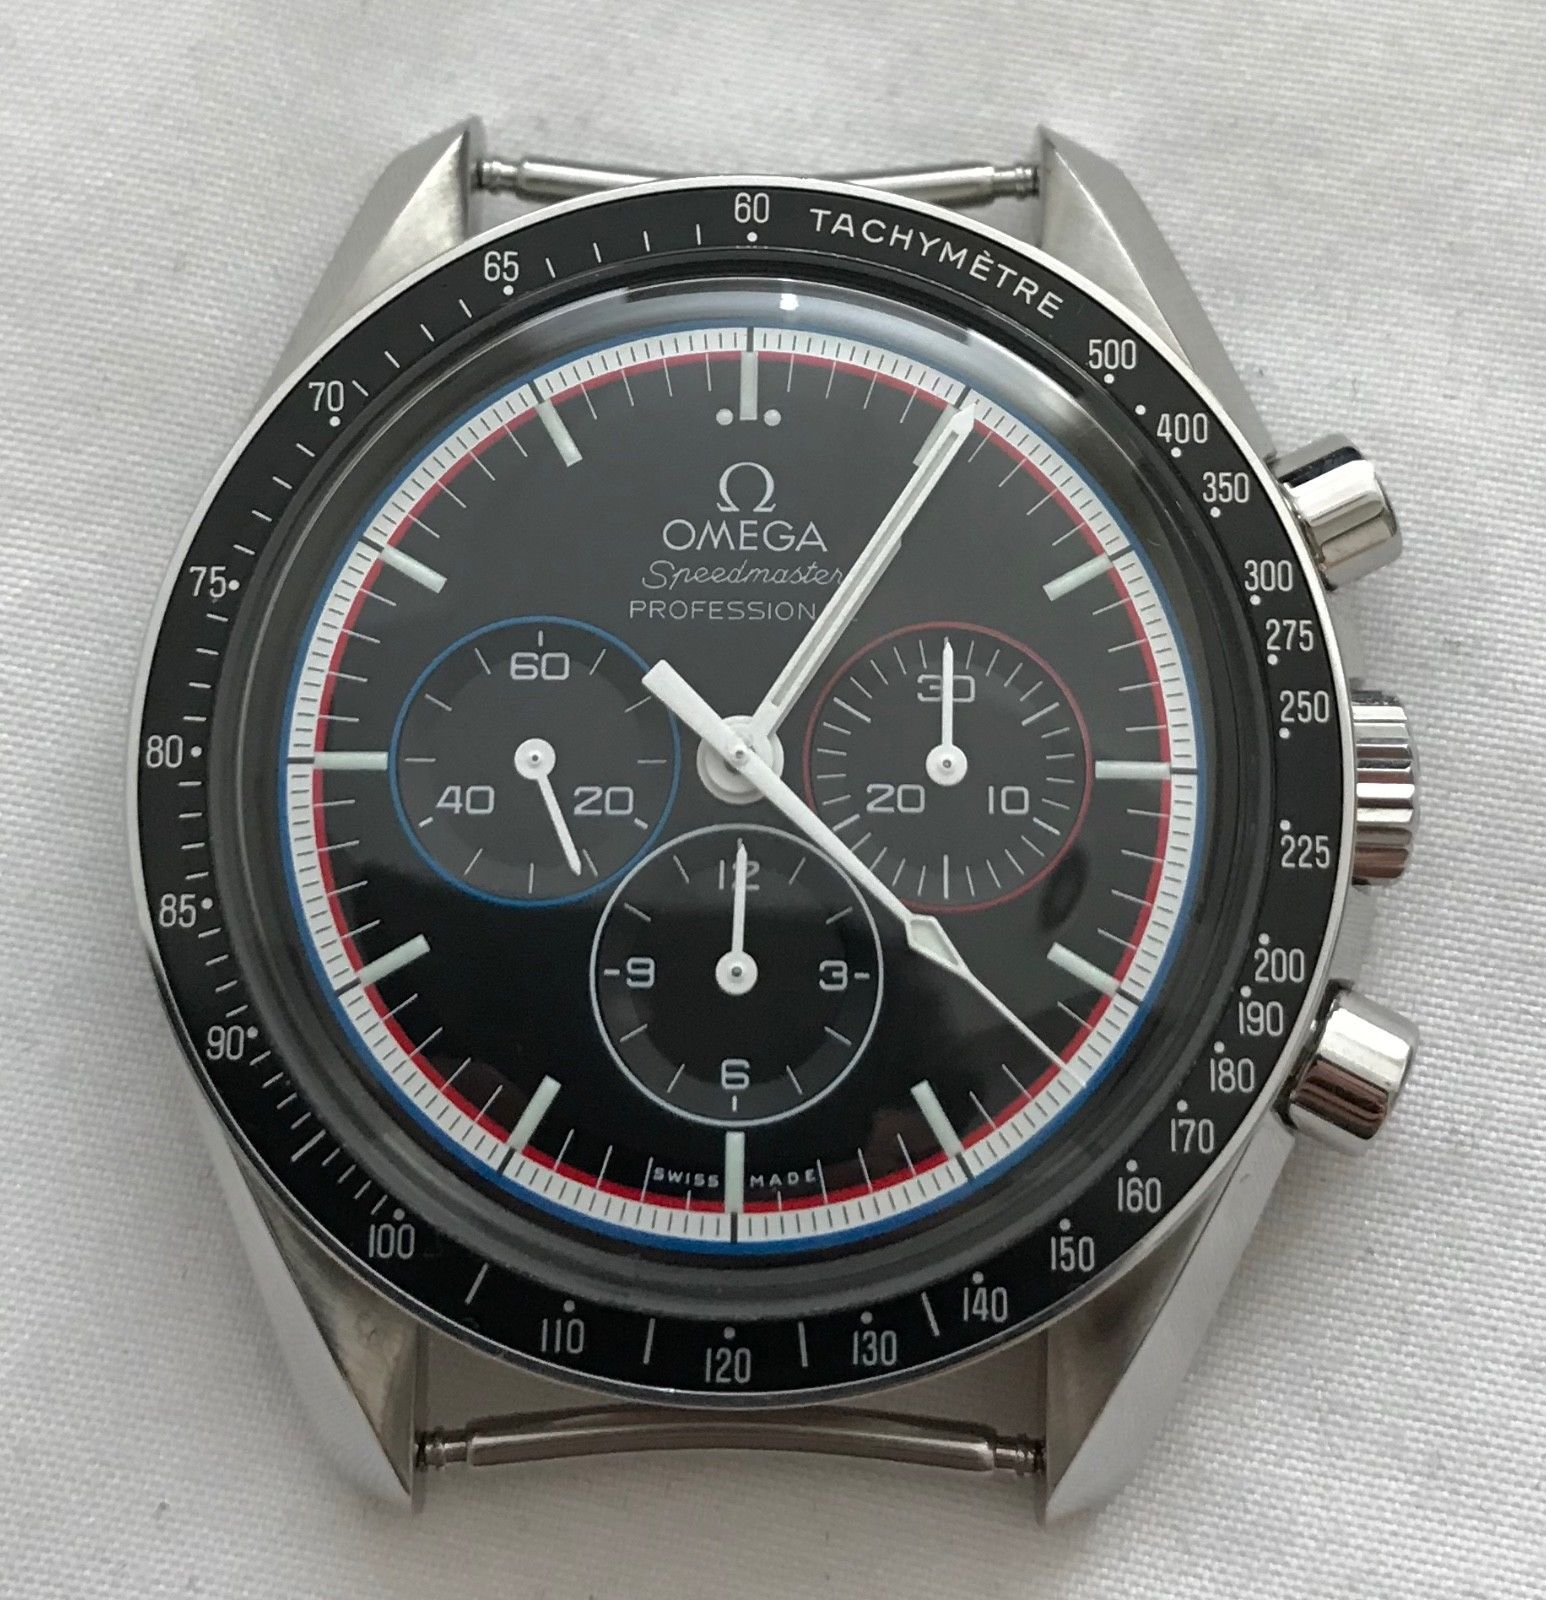 Watch Auctions Omega Forums